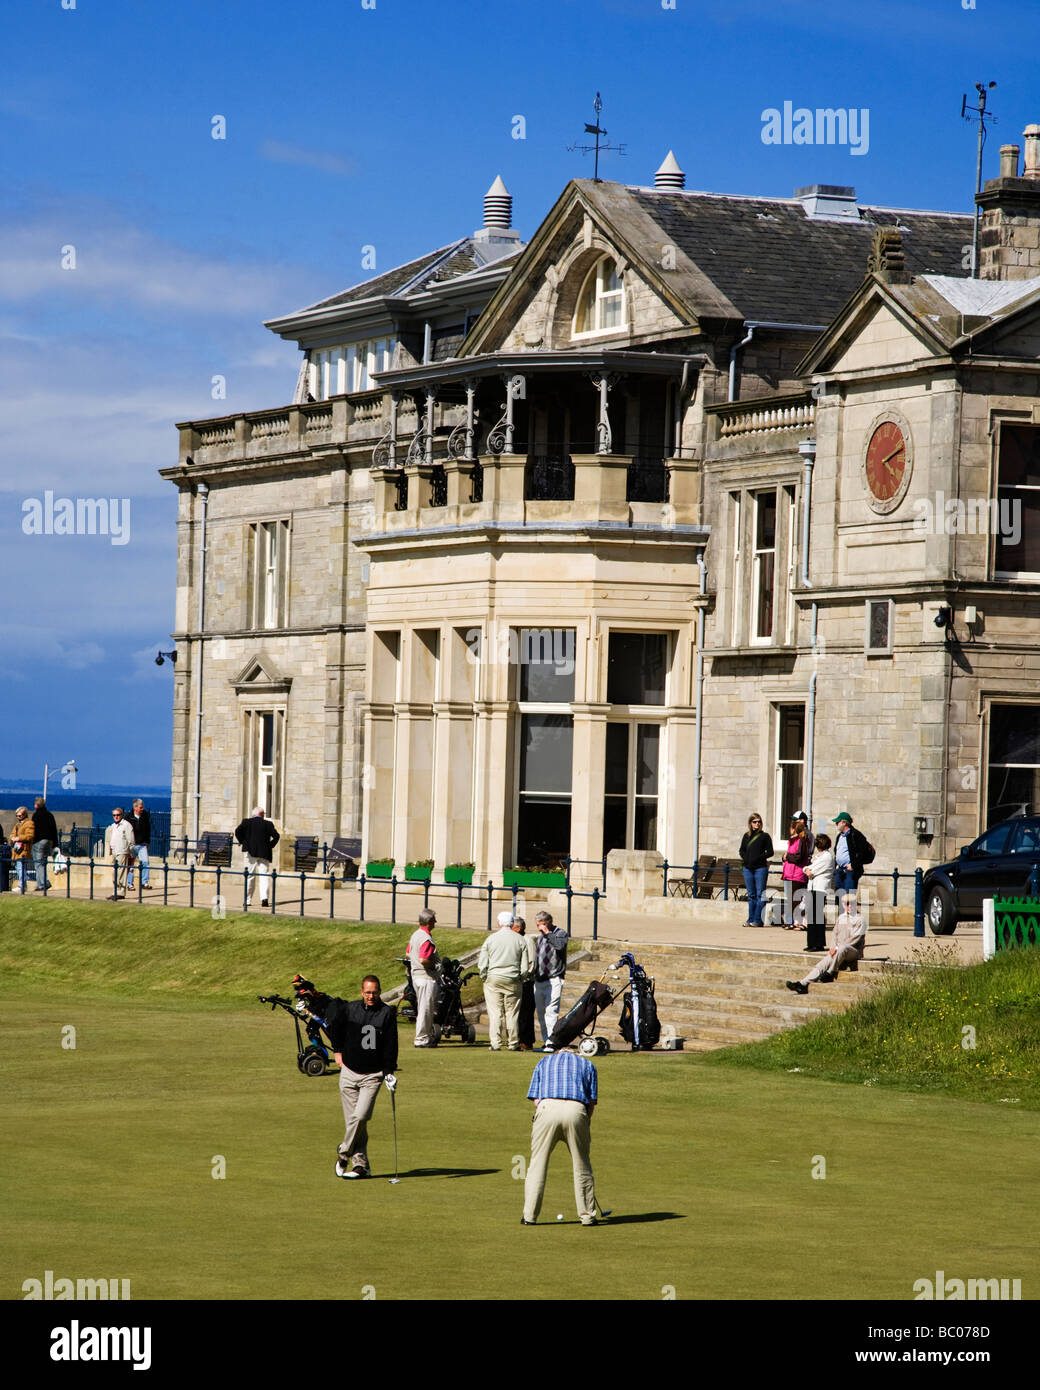 The 18th green and Clubhouse on the Old Course of the Royal and Ancient Golf Club, St Andrews, Fife, Scotland. - Stock Image